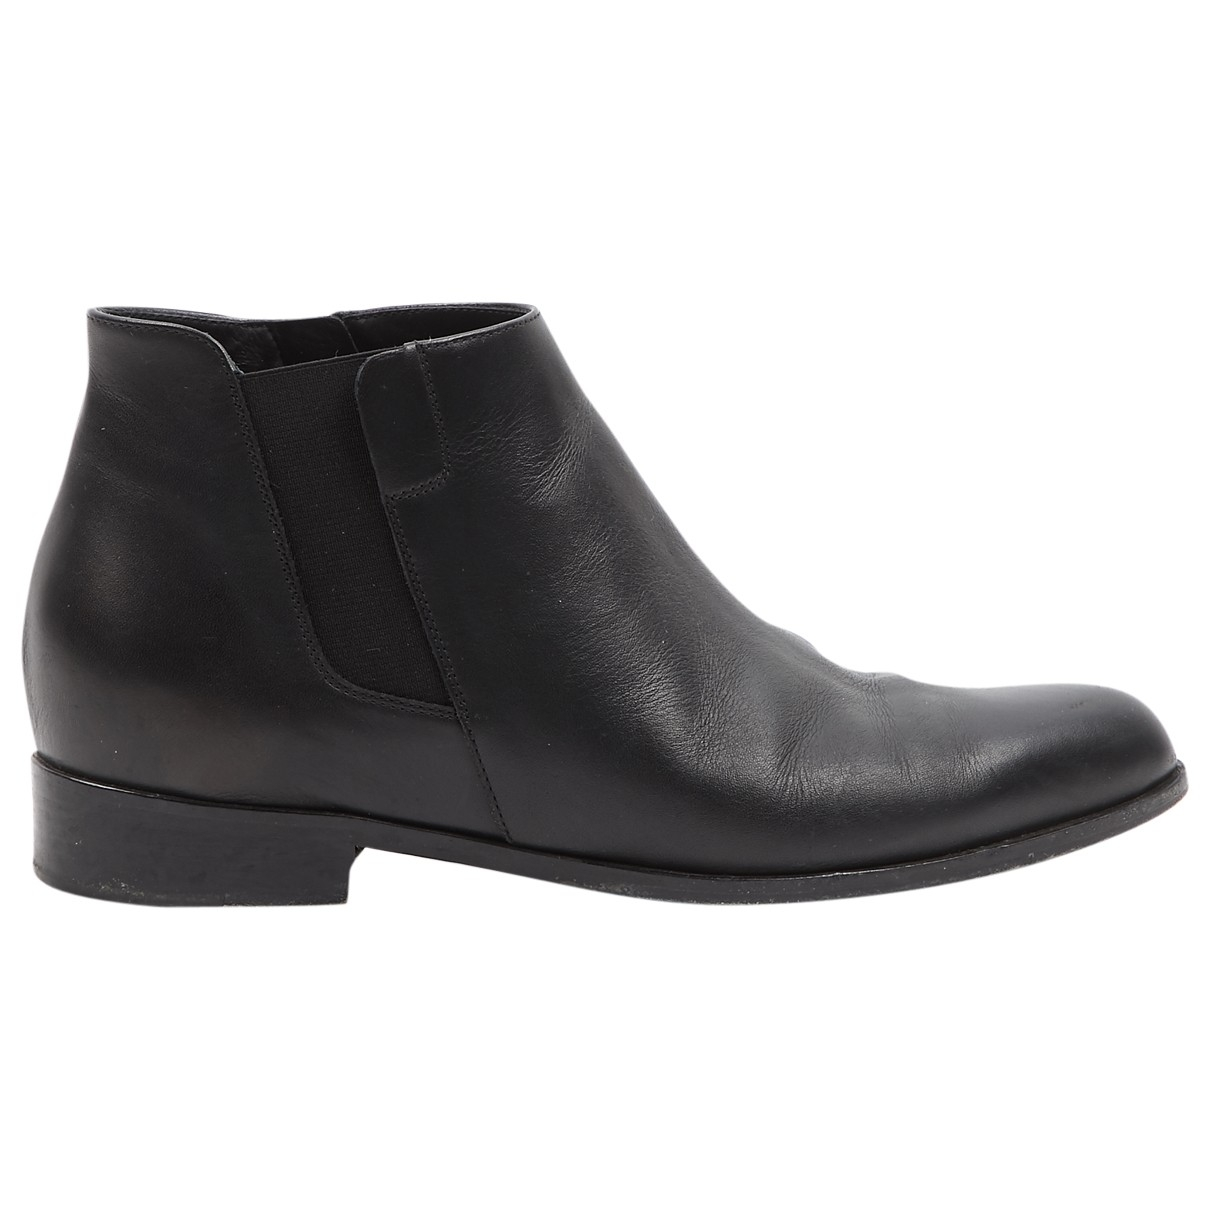 Giuseppe Zanotti \N Black Leather Ankle boots for Women 36 EU